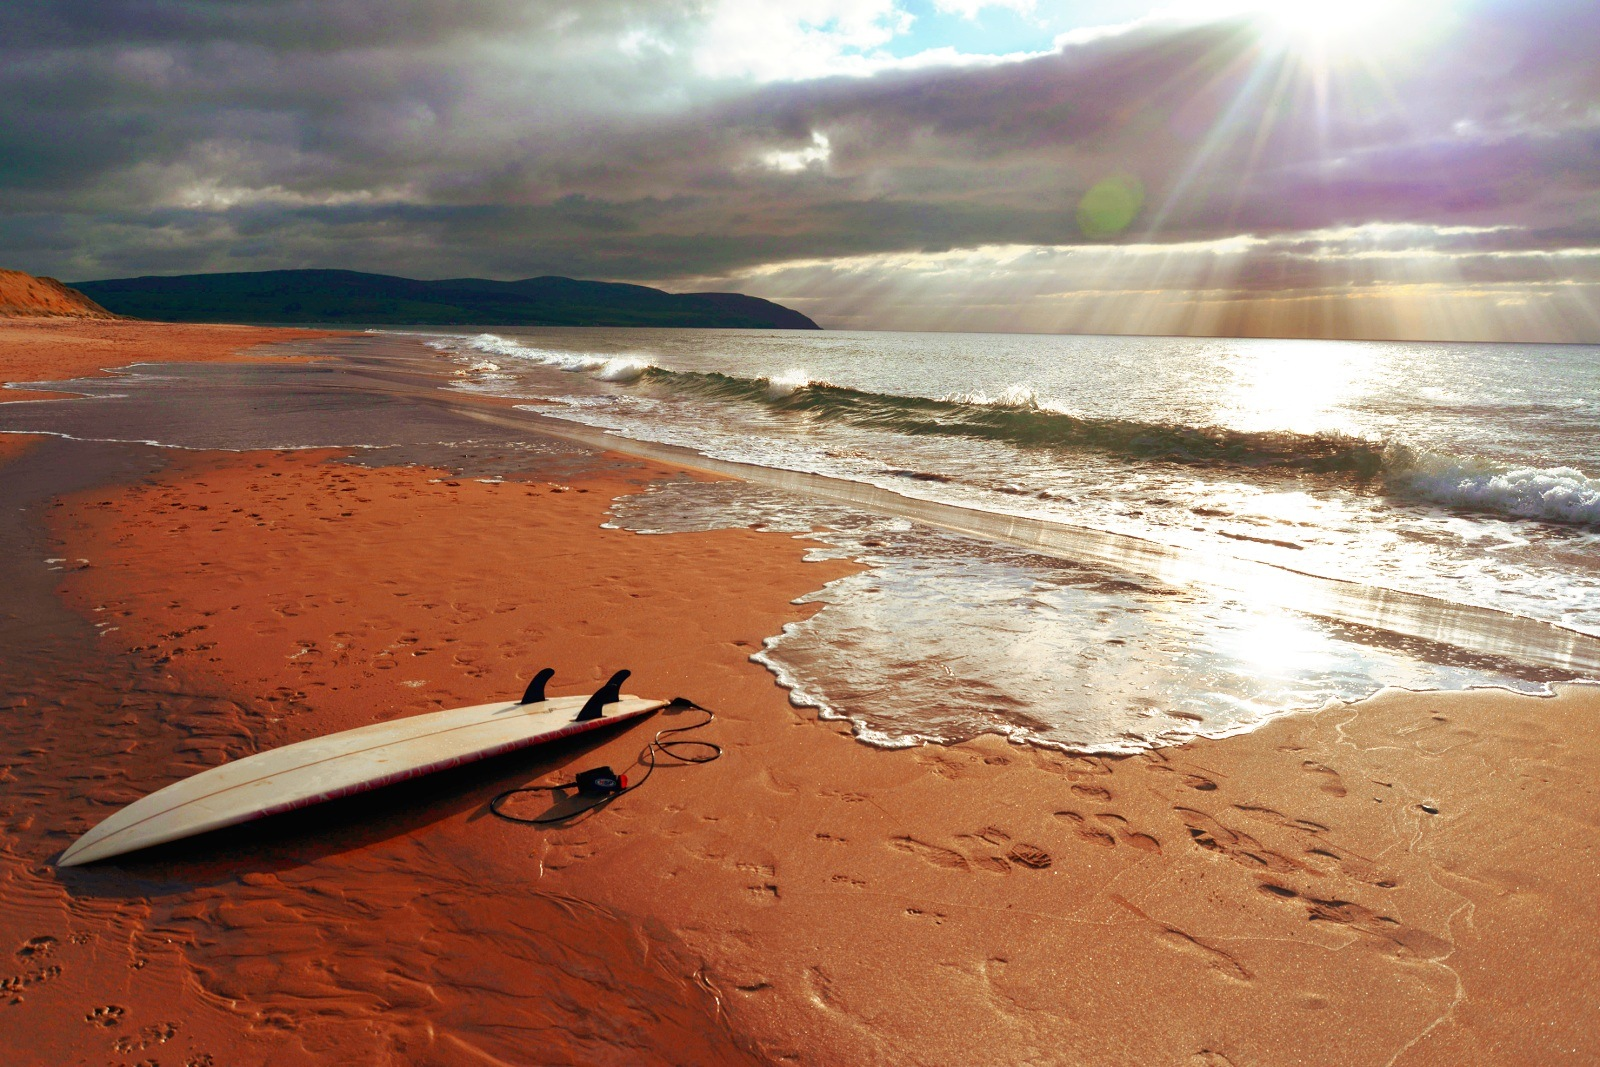 My Board on a great day with terrible waves. easy  by Jamie McFadyen